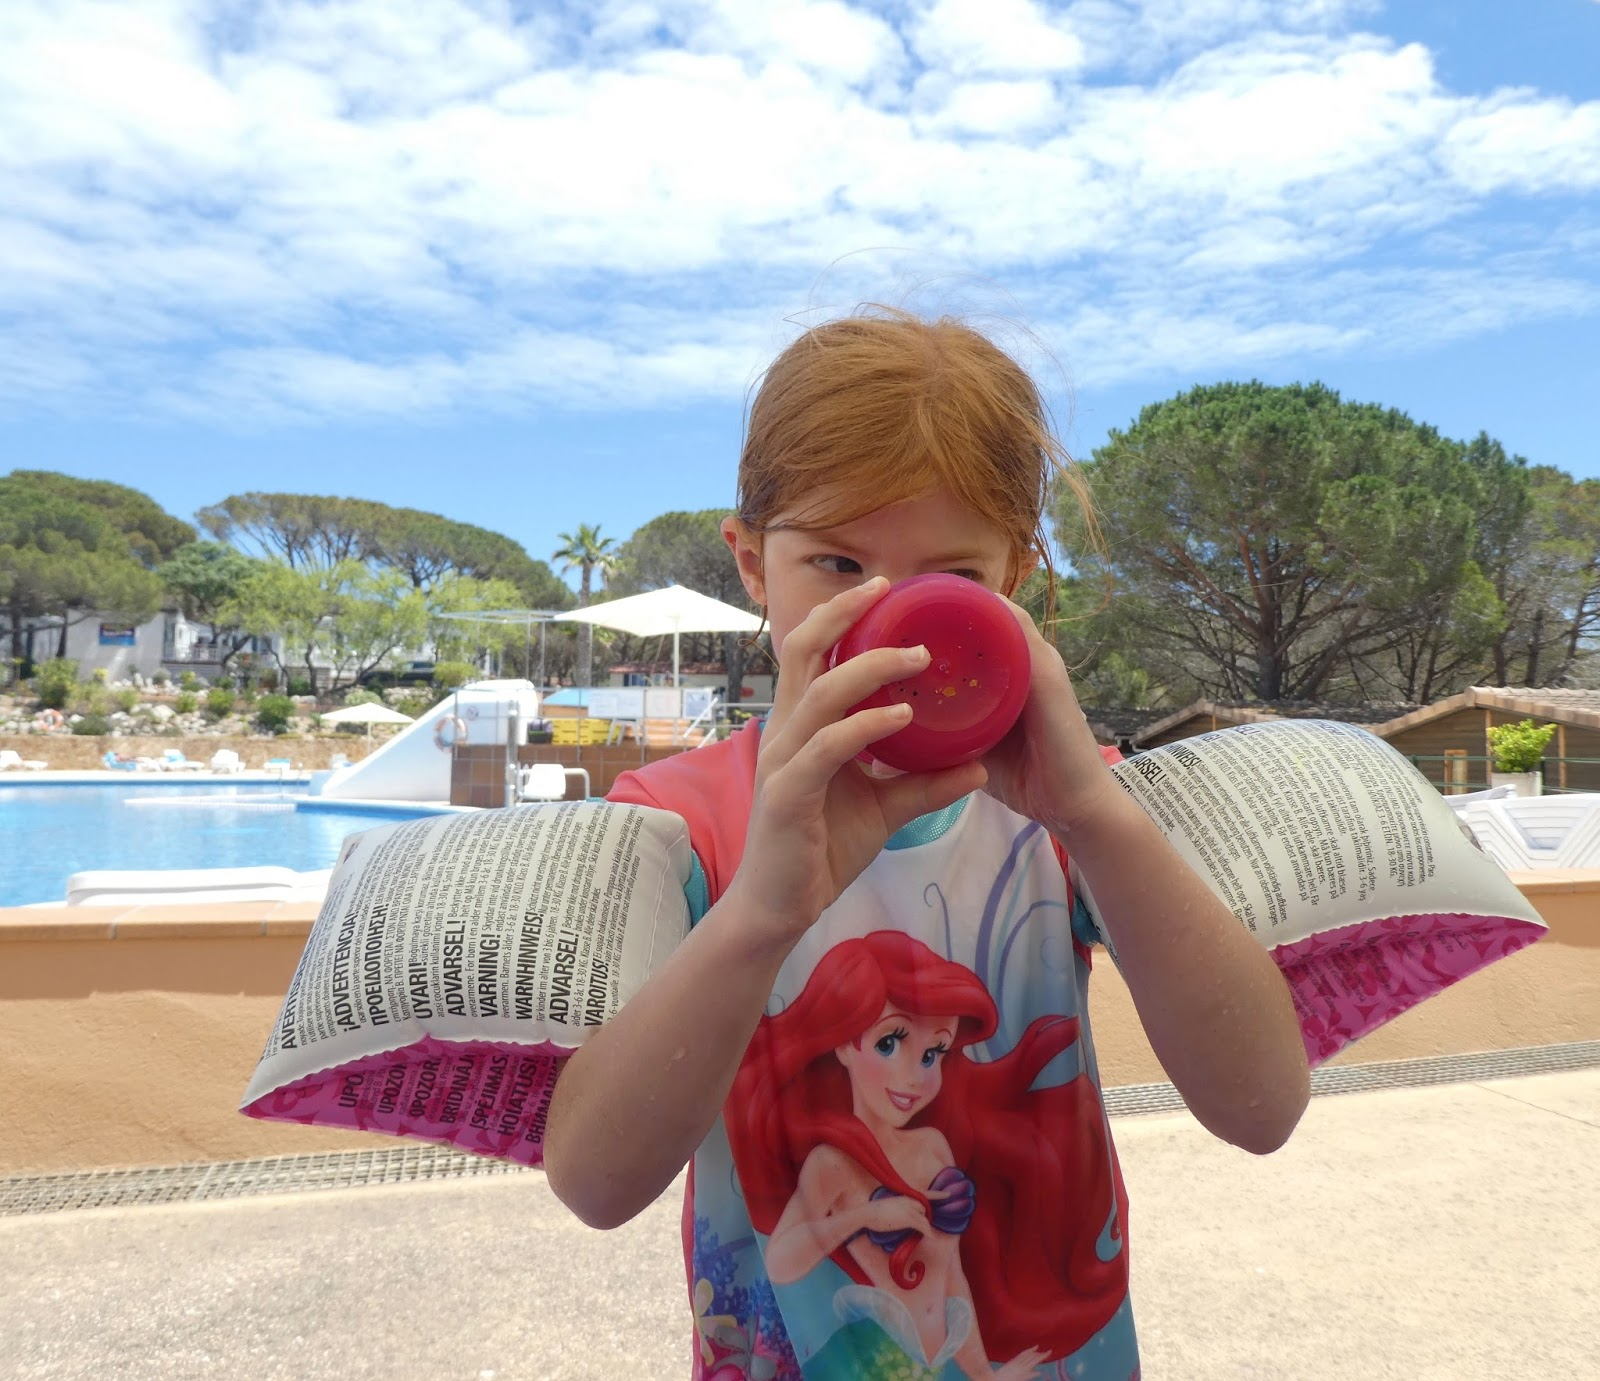 Camping La Siesta, Calella de Palafrugell, Costa Brava - a review - swimming pool